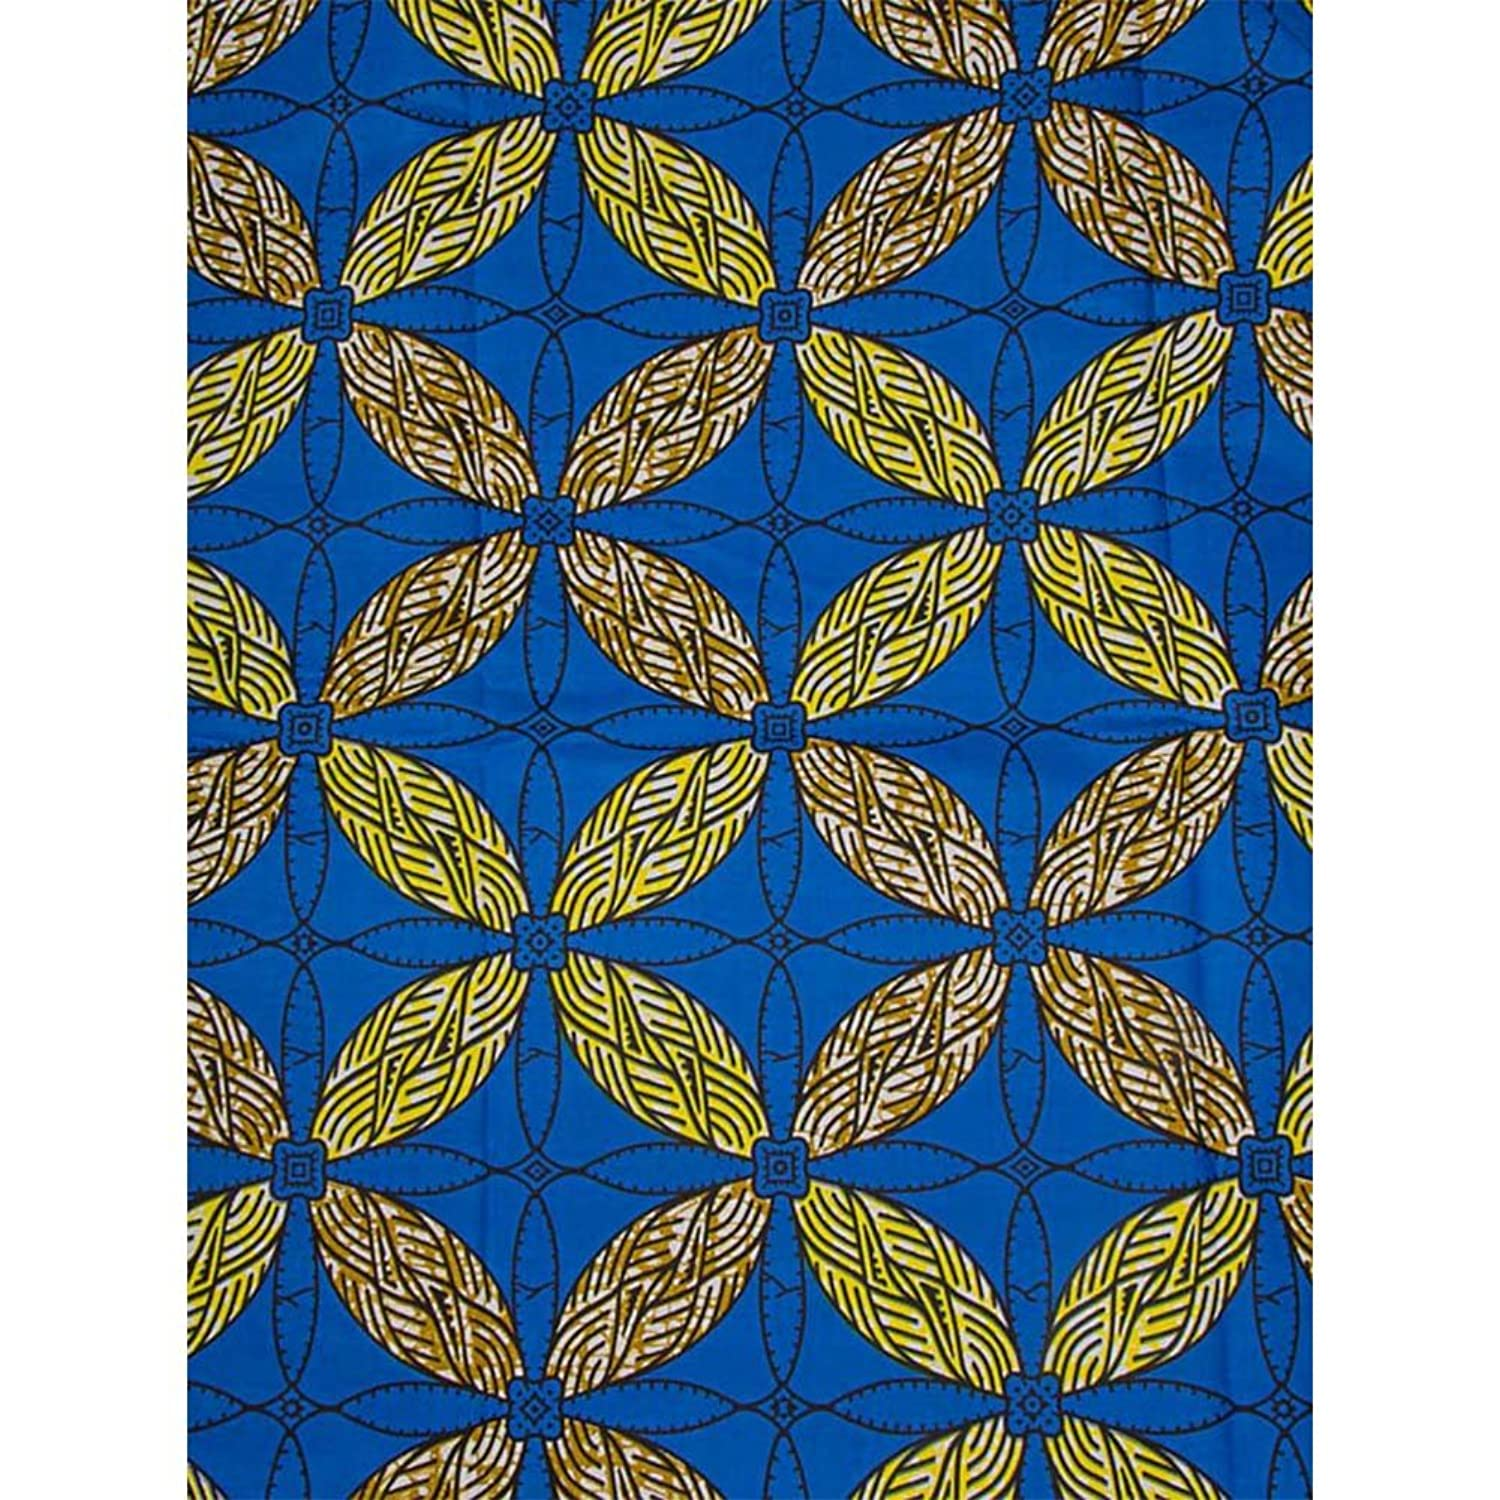 Premier African Super Deluxe Wax Leaf Royal Blue Patterns For Wedding sw1410019